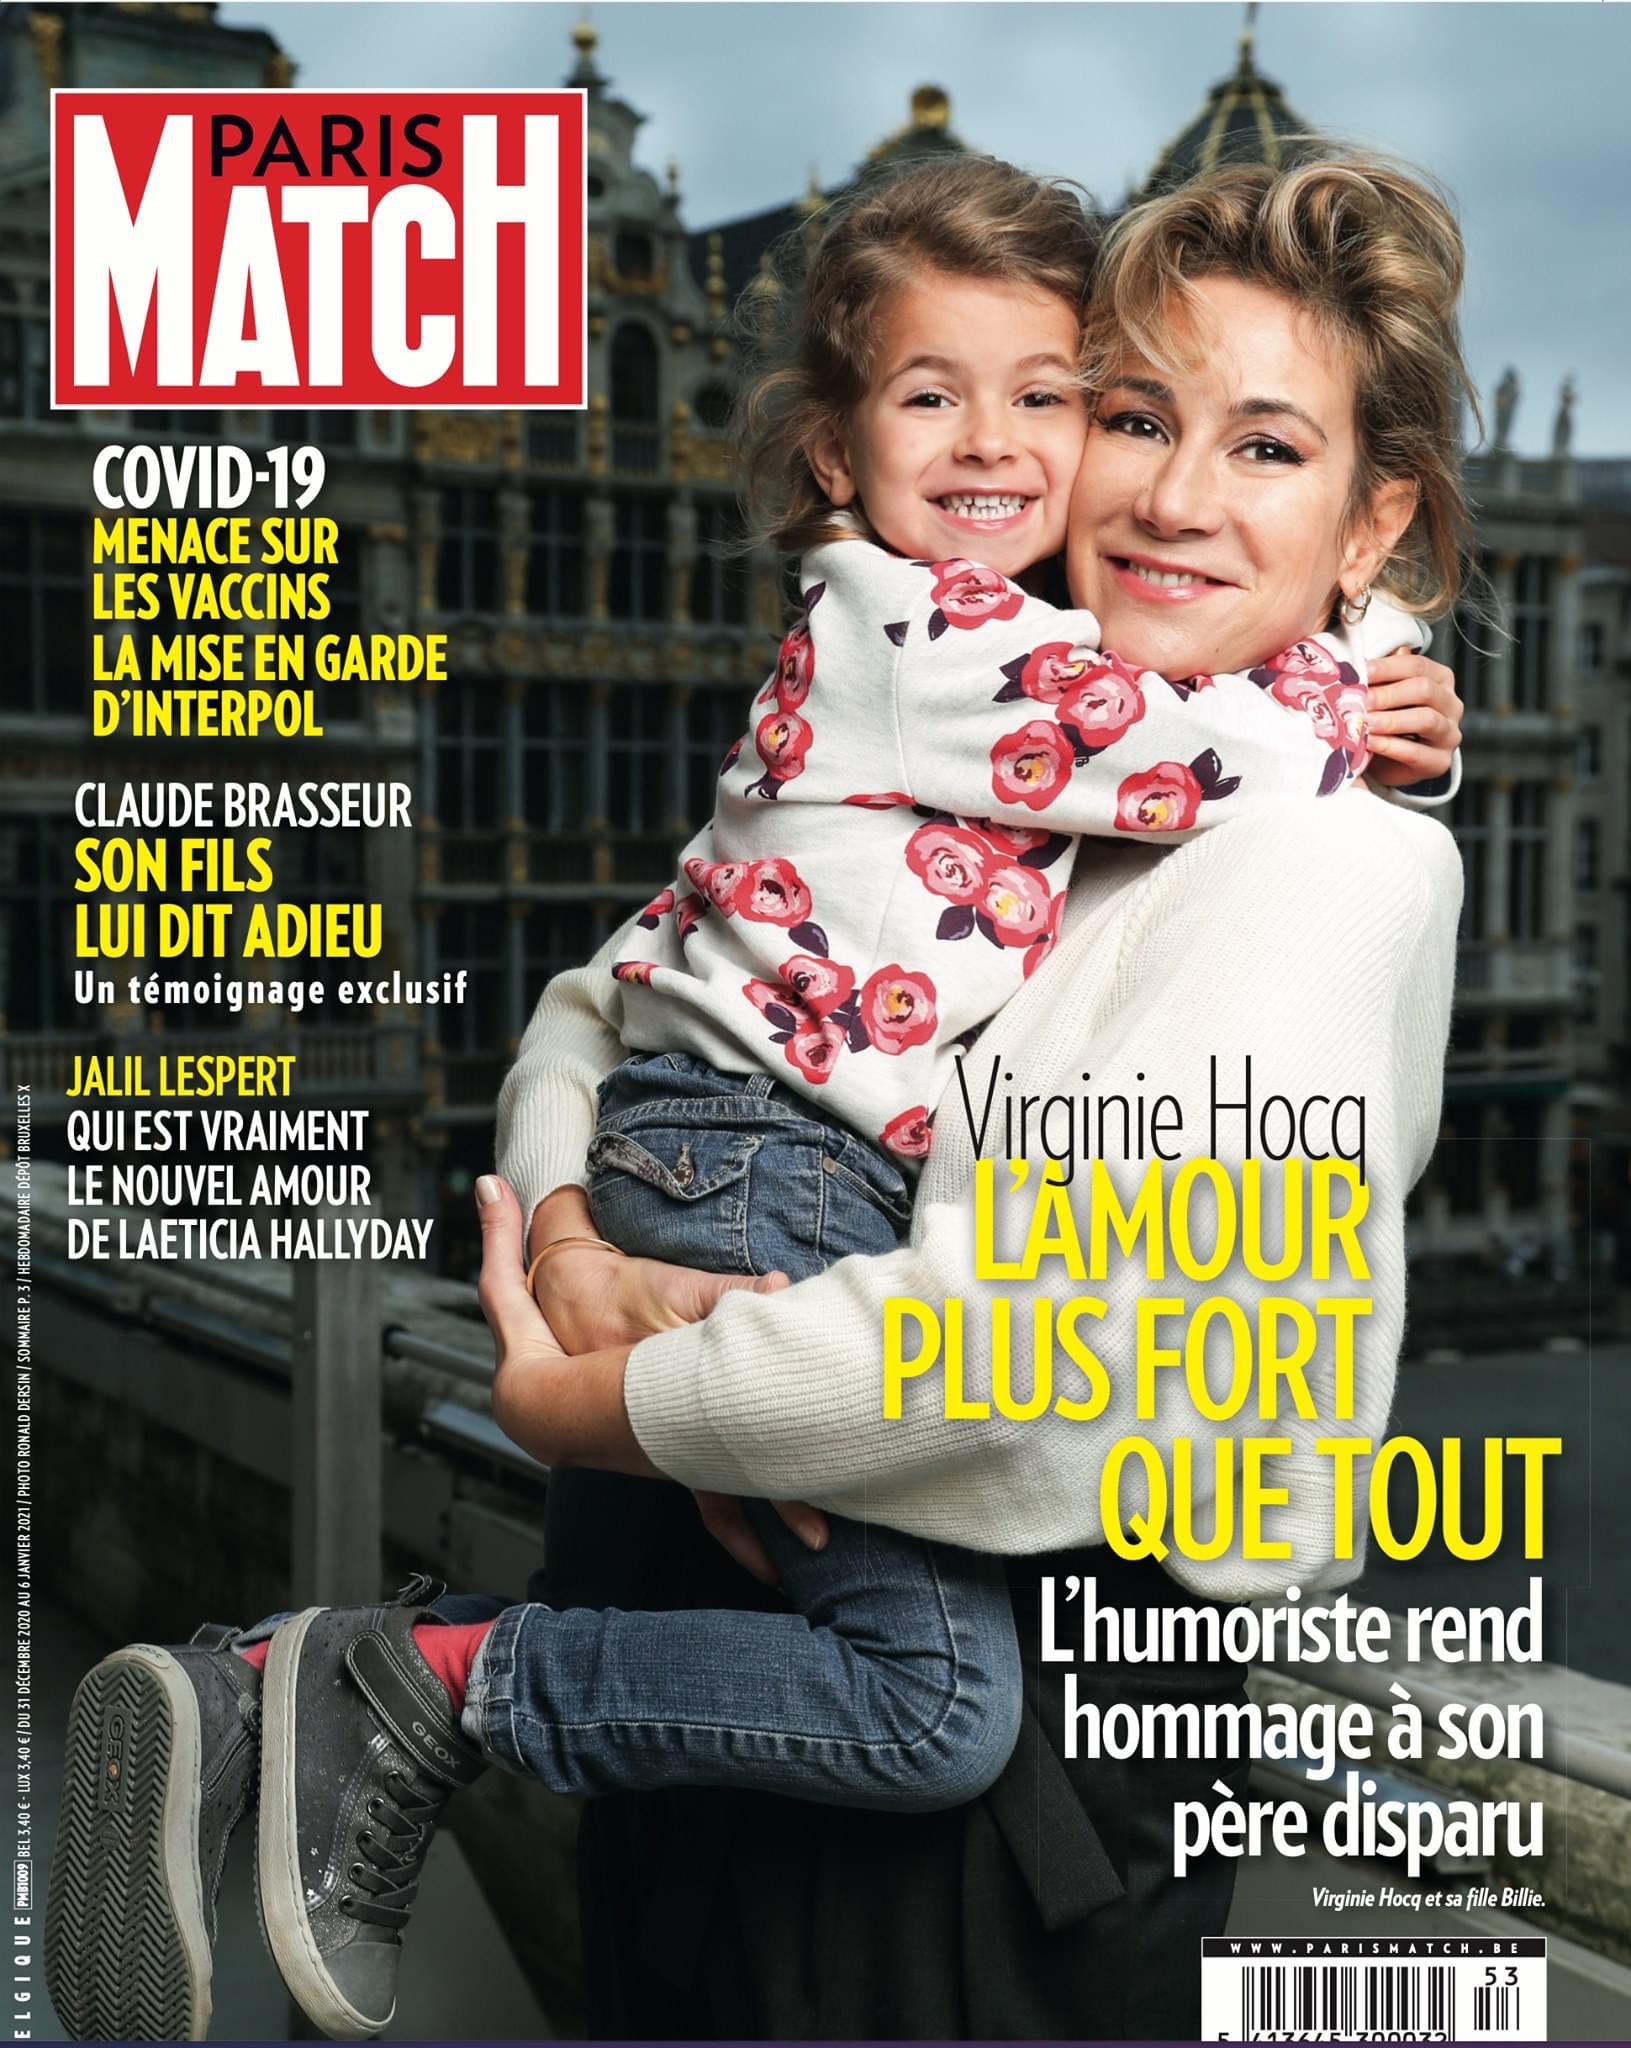 Paris Match Belgique - 31.12.20